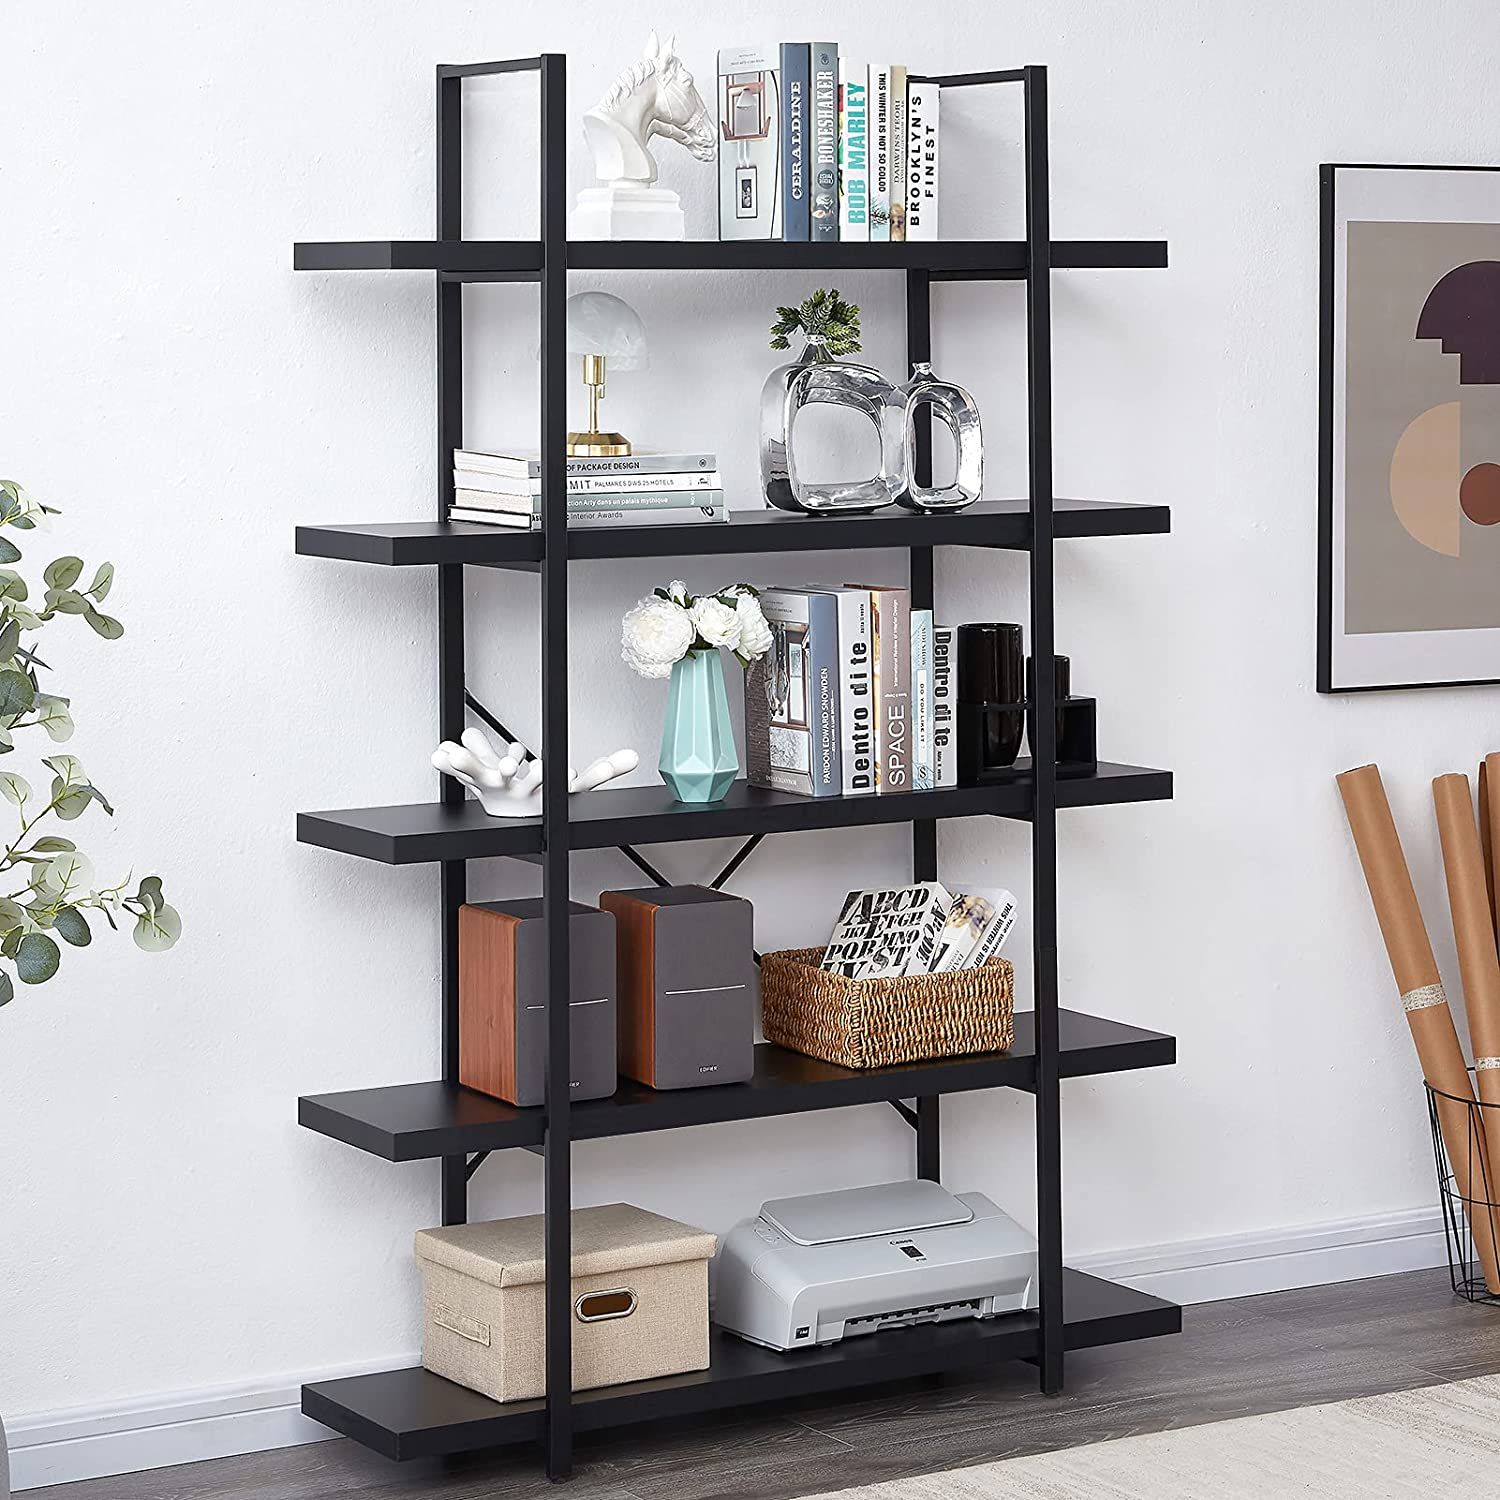 Superjare 5-Tier Bookshelf, Industrial Bookcase with Metal Frame, Modern Rustic Shelving Unit for Home Office, Wood Grain - Black